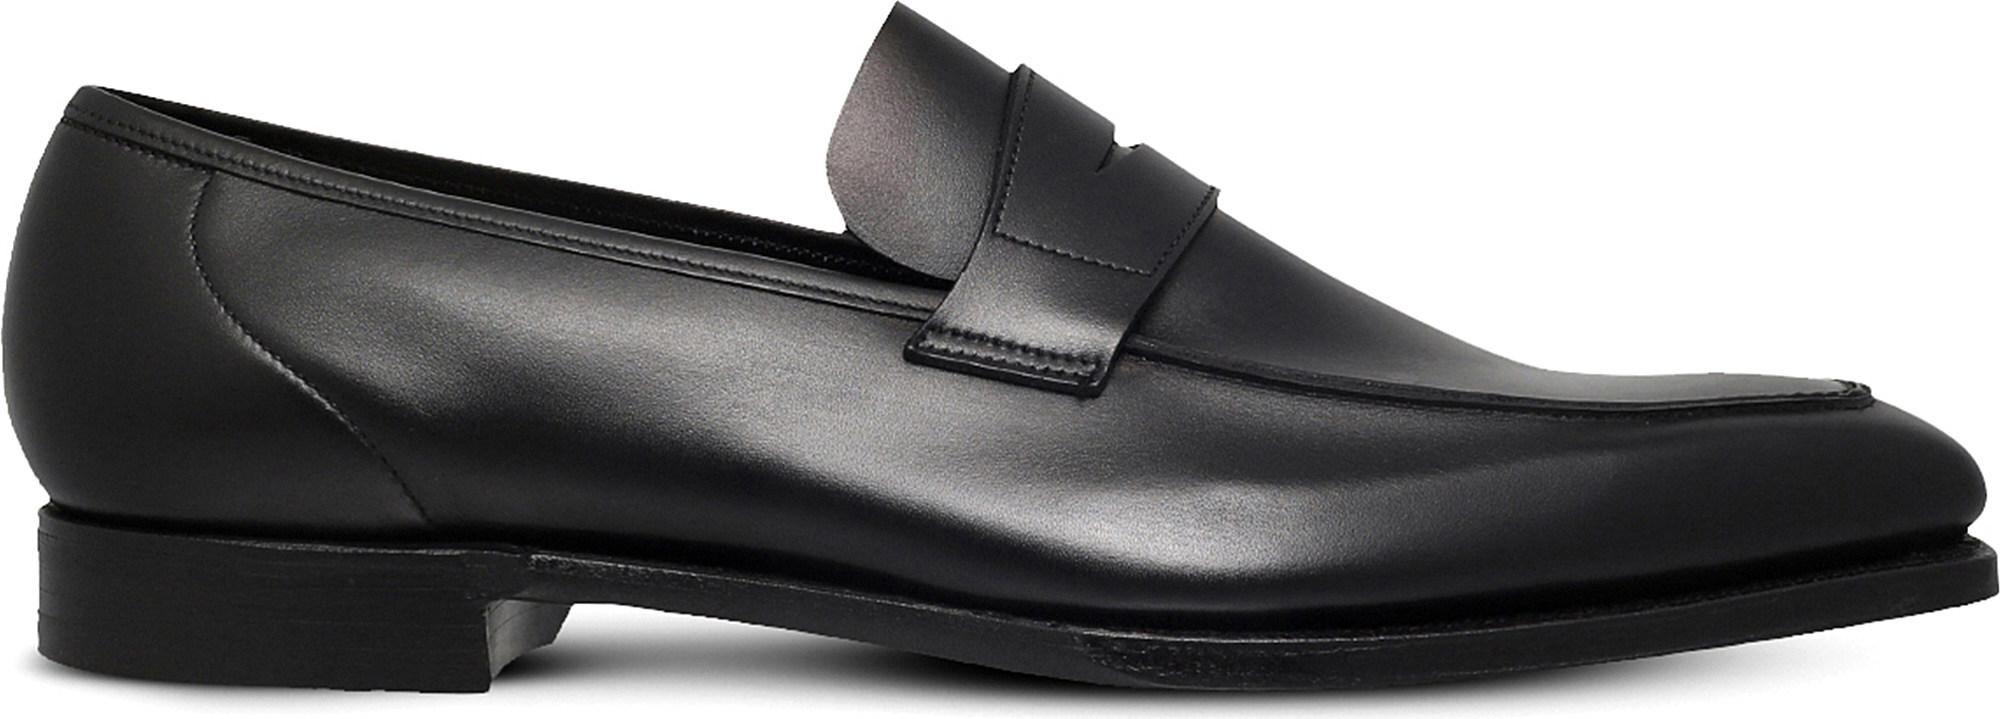 Adrian Leather Tasselled Loafers - BlackGeorge Cleverley PNS3tY